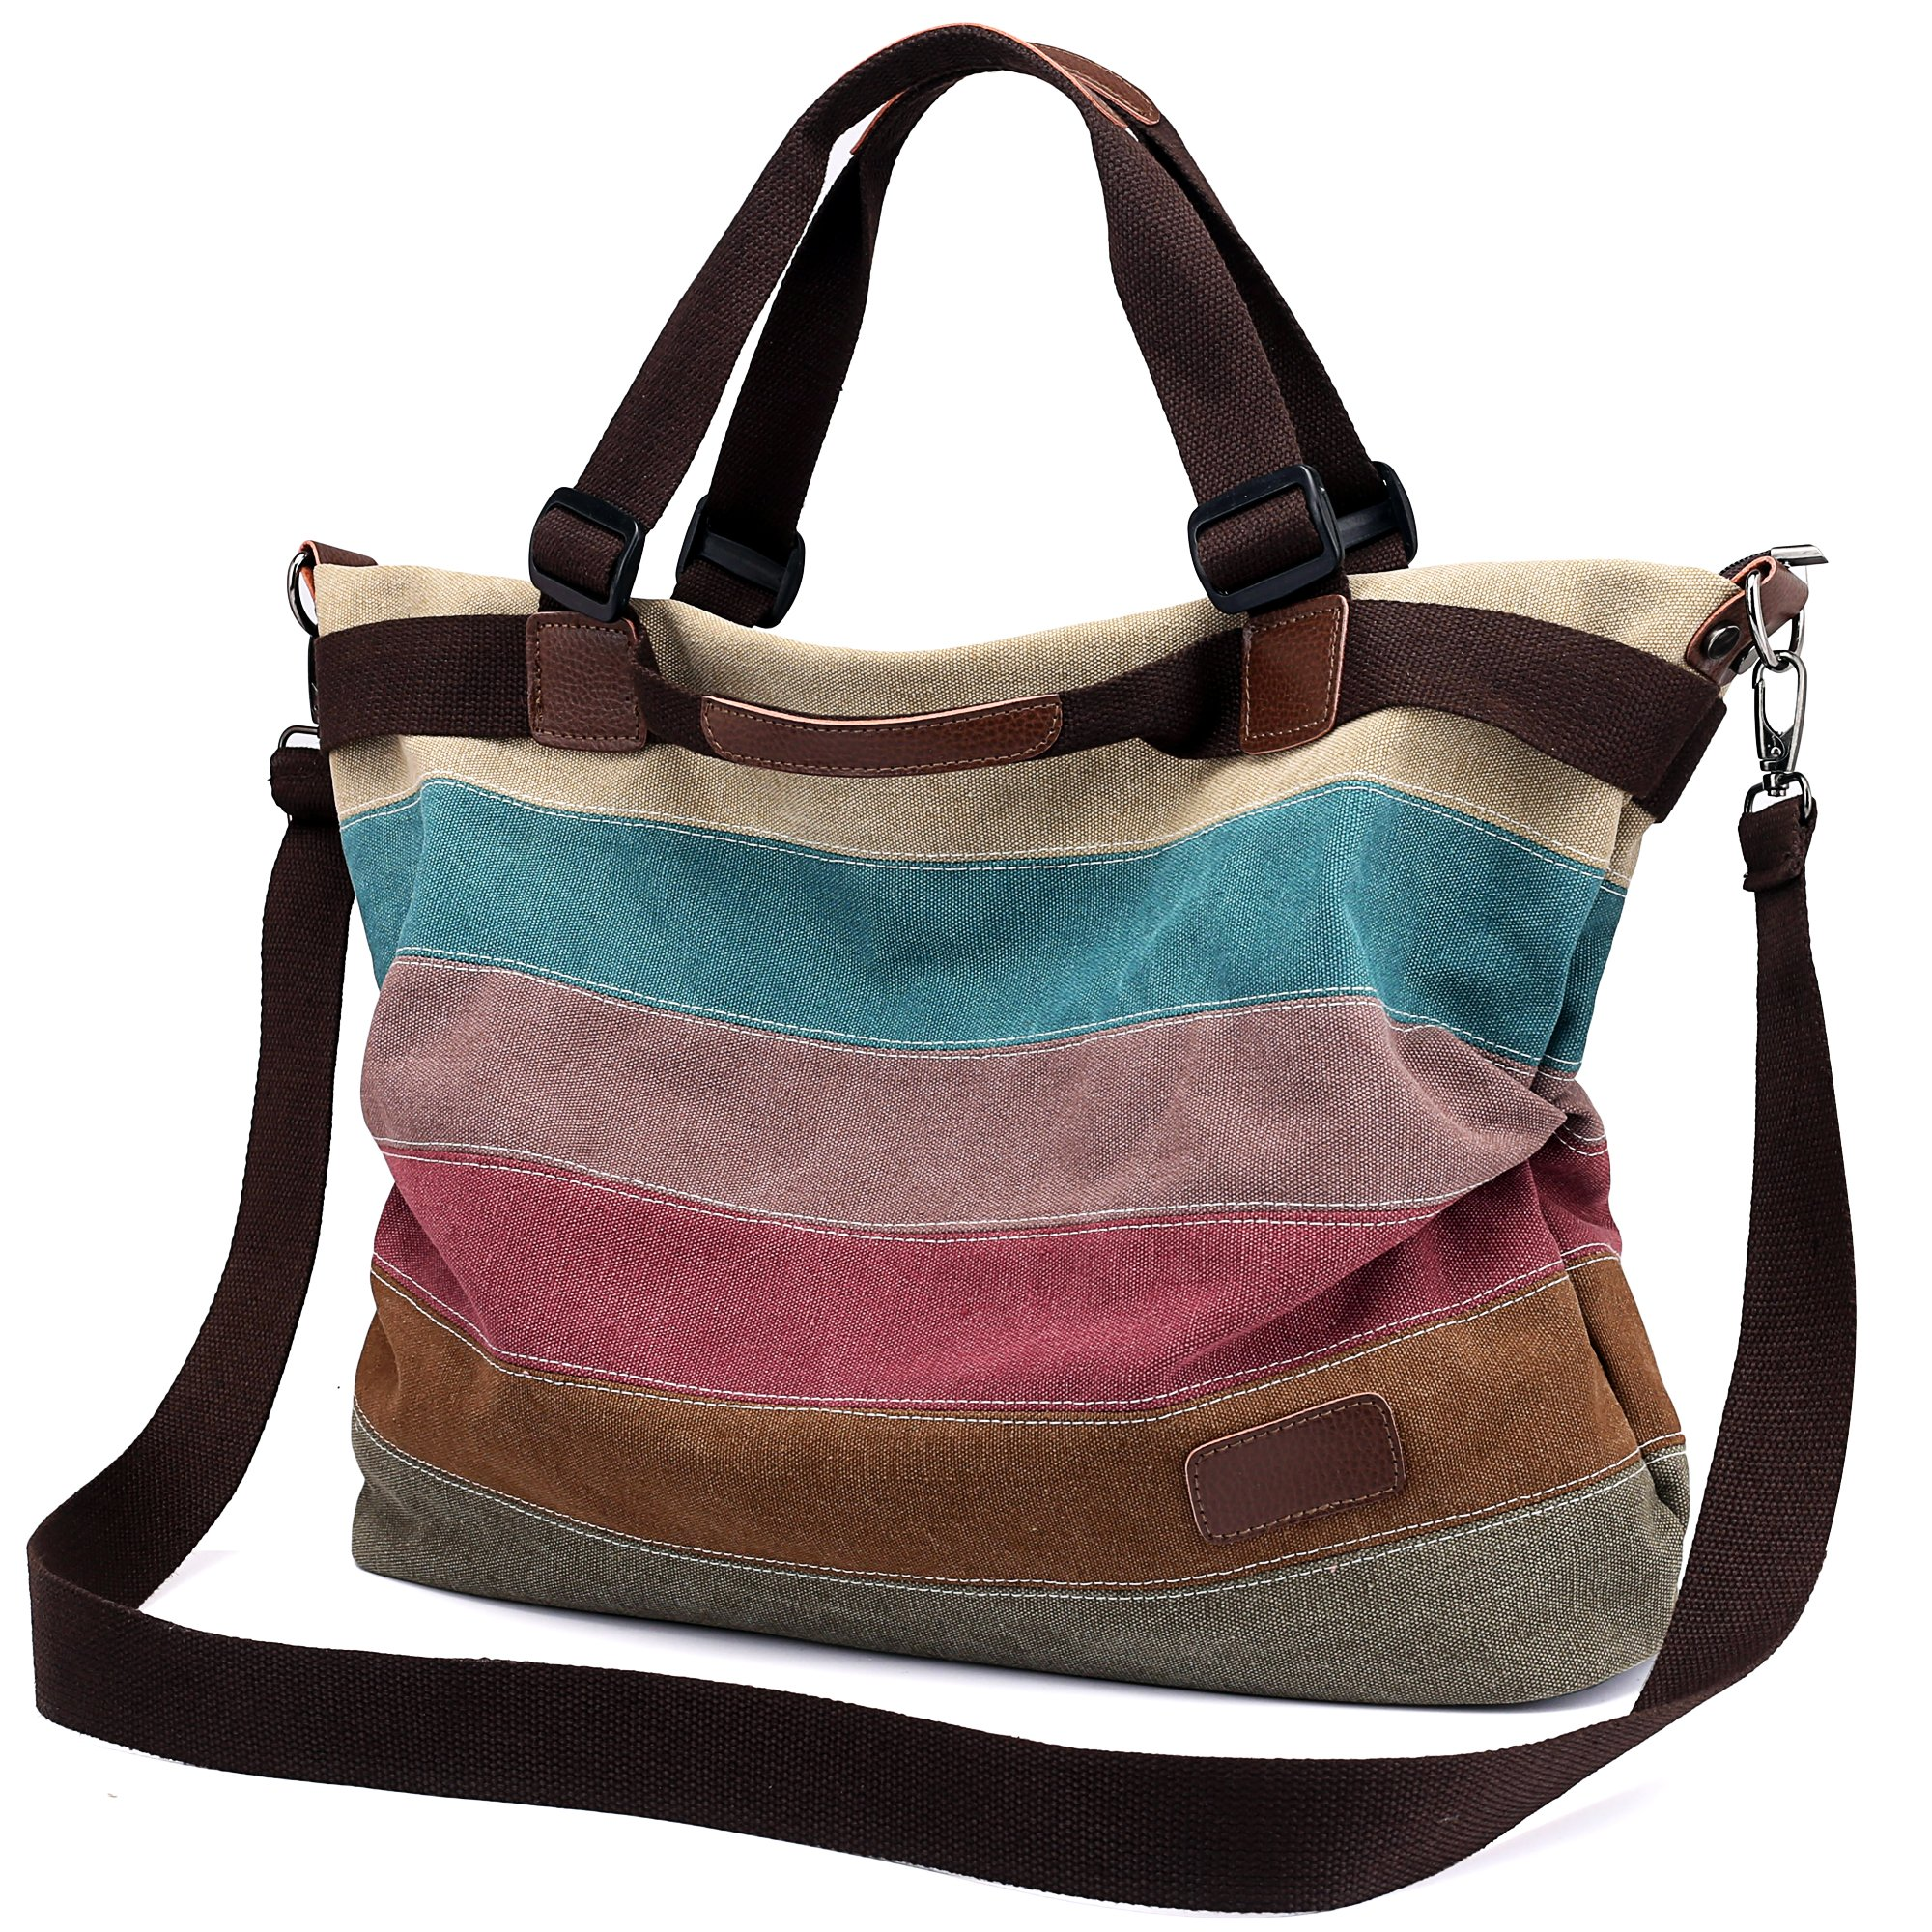 Women's Canvas Handbag, Unives Ladies Vintage Tote Hobo Shoulder Bag Shopping Bags Top-handle Satchel Multi-colored,Large Size(17.5x13.5x7Inch)